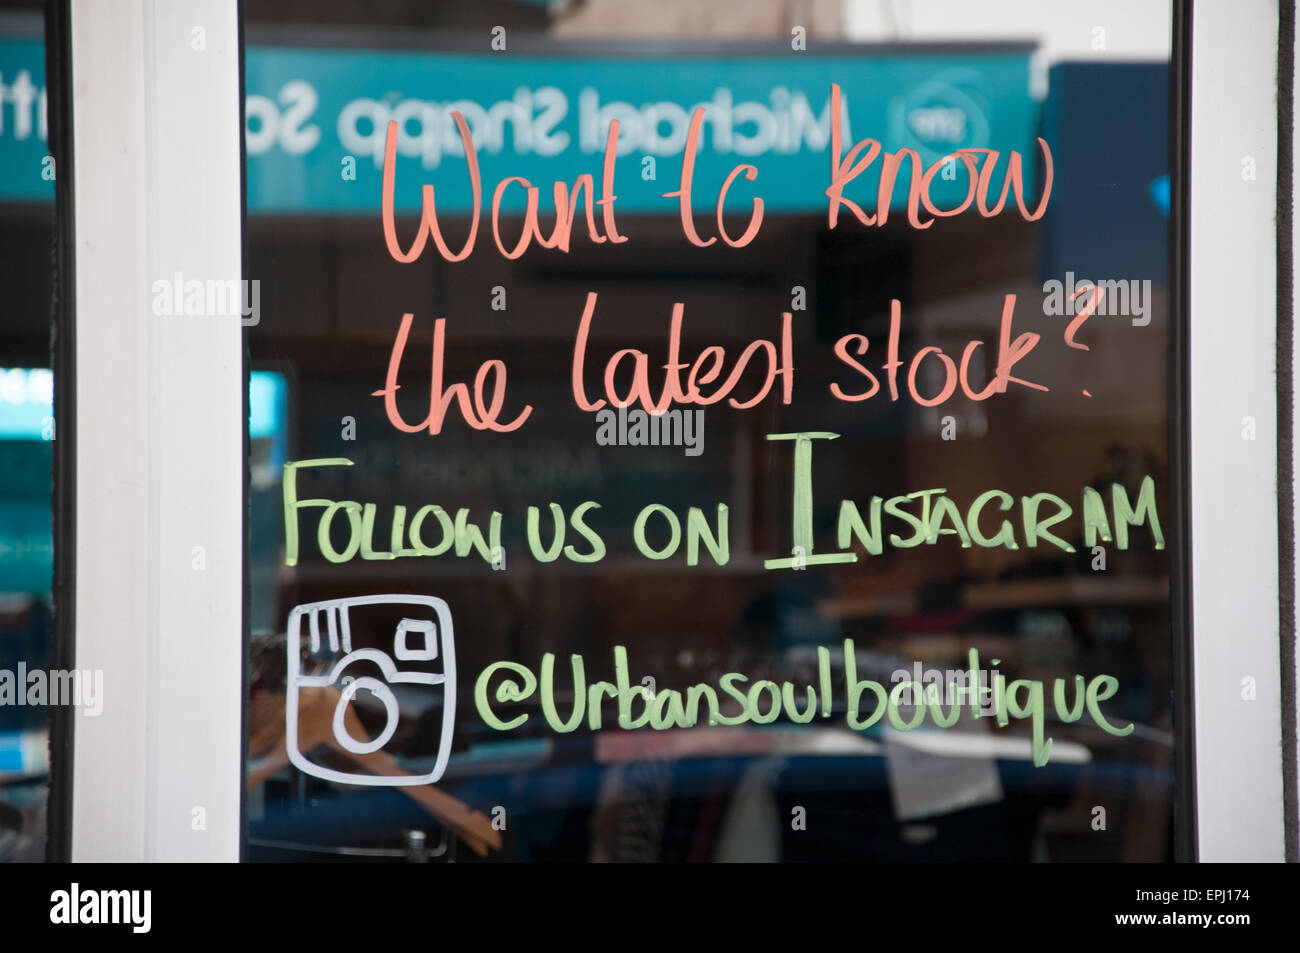 Social media marketing message on the door of a boutique in Glen Huntly Road, Elsternwick, Melbourne - Stock Image